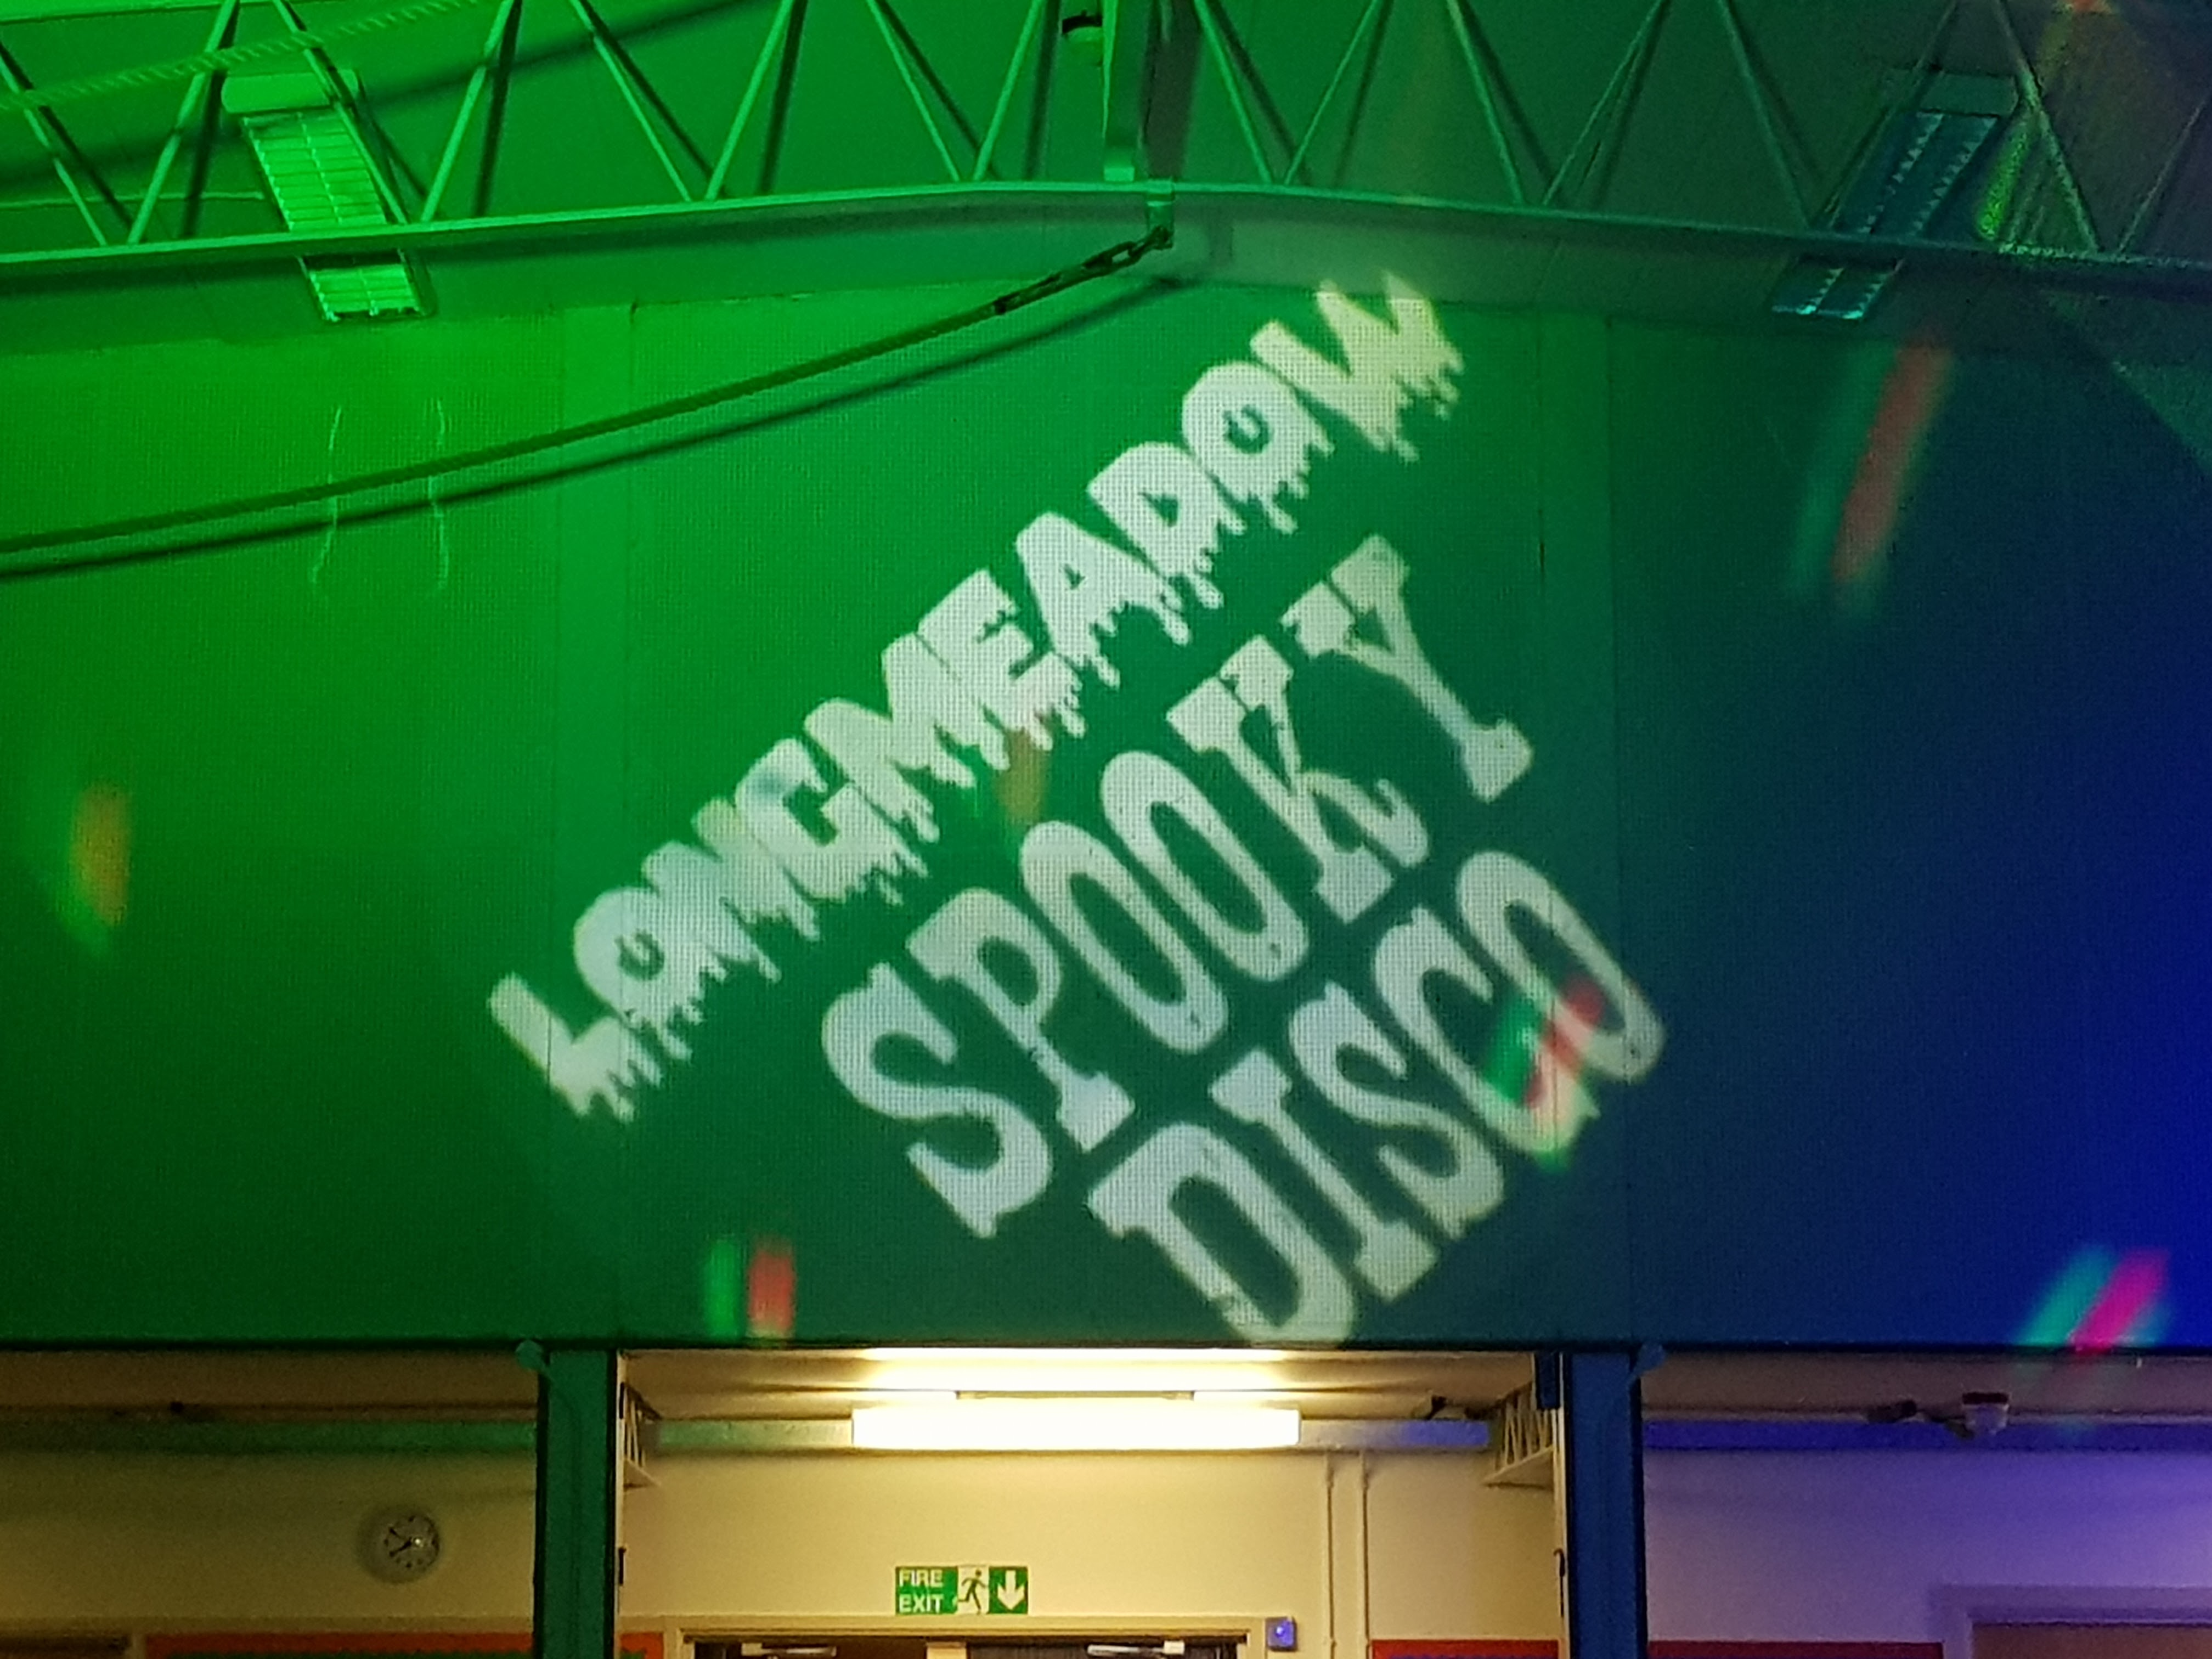 School Disco DJ - Monogram Green